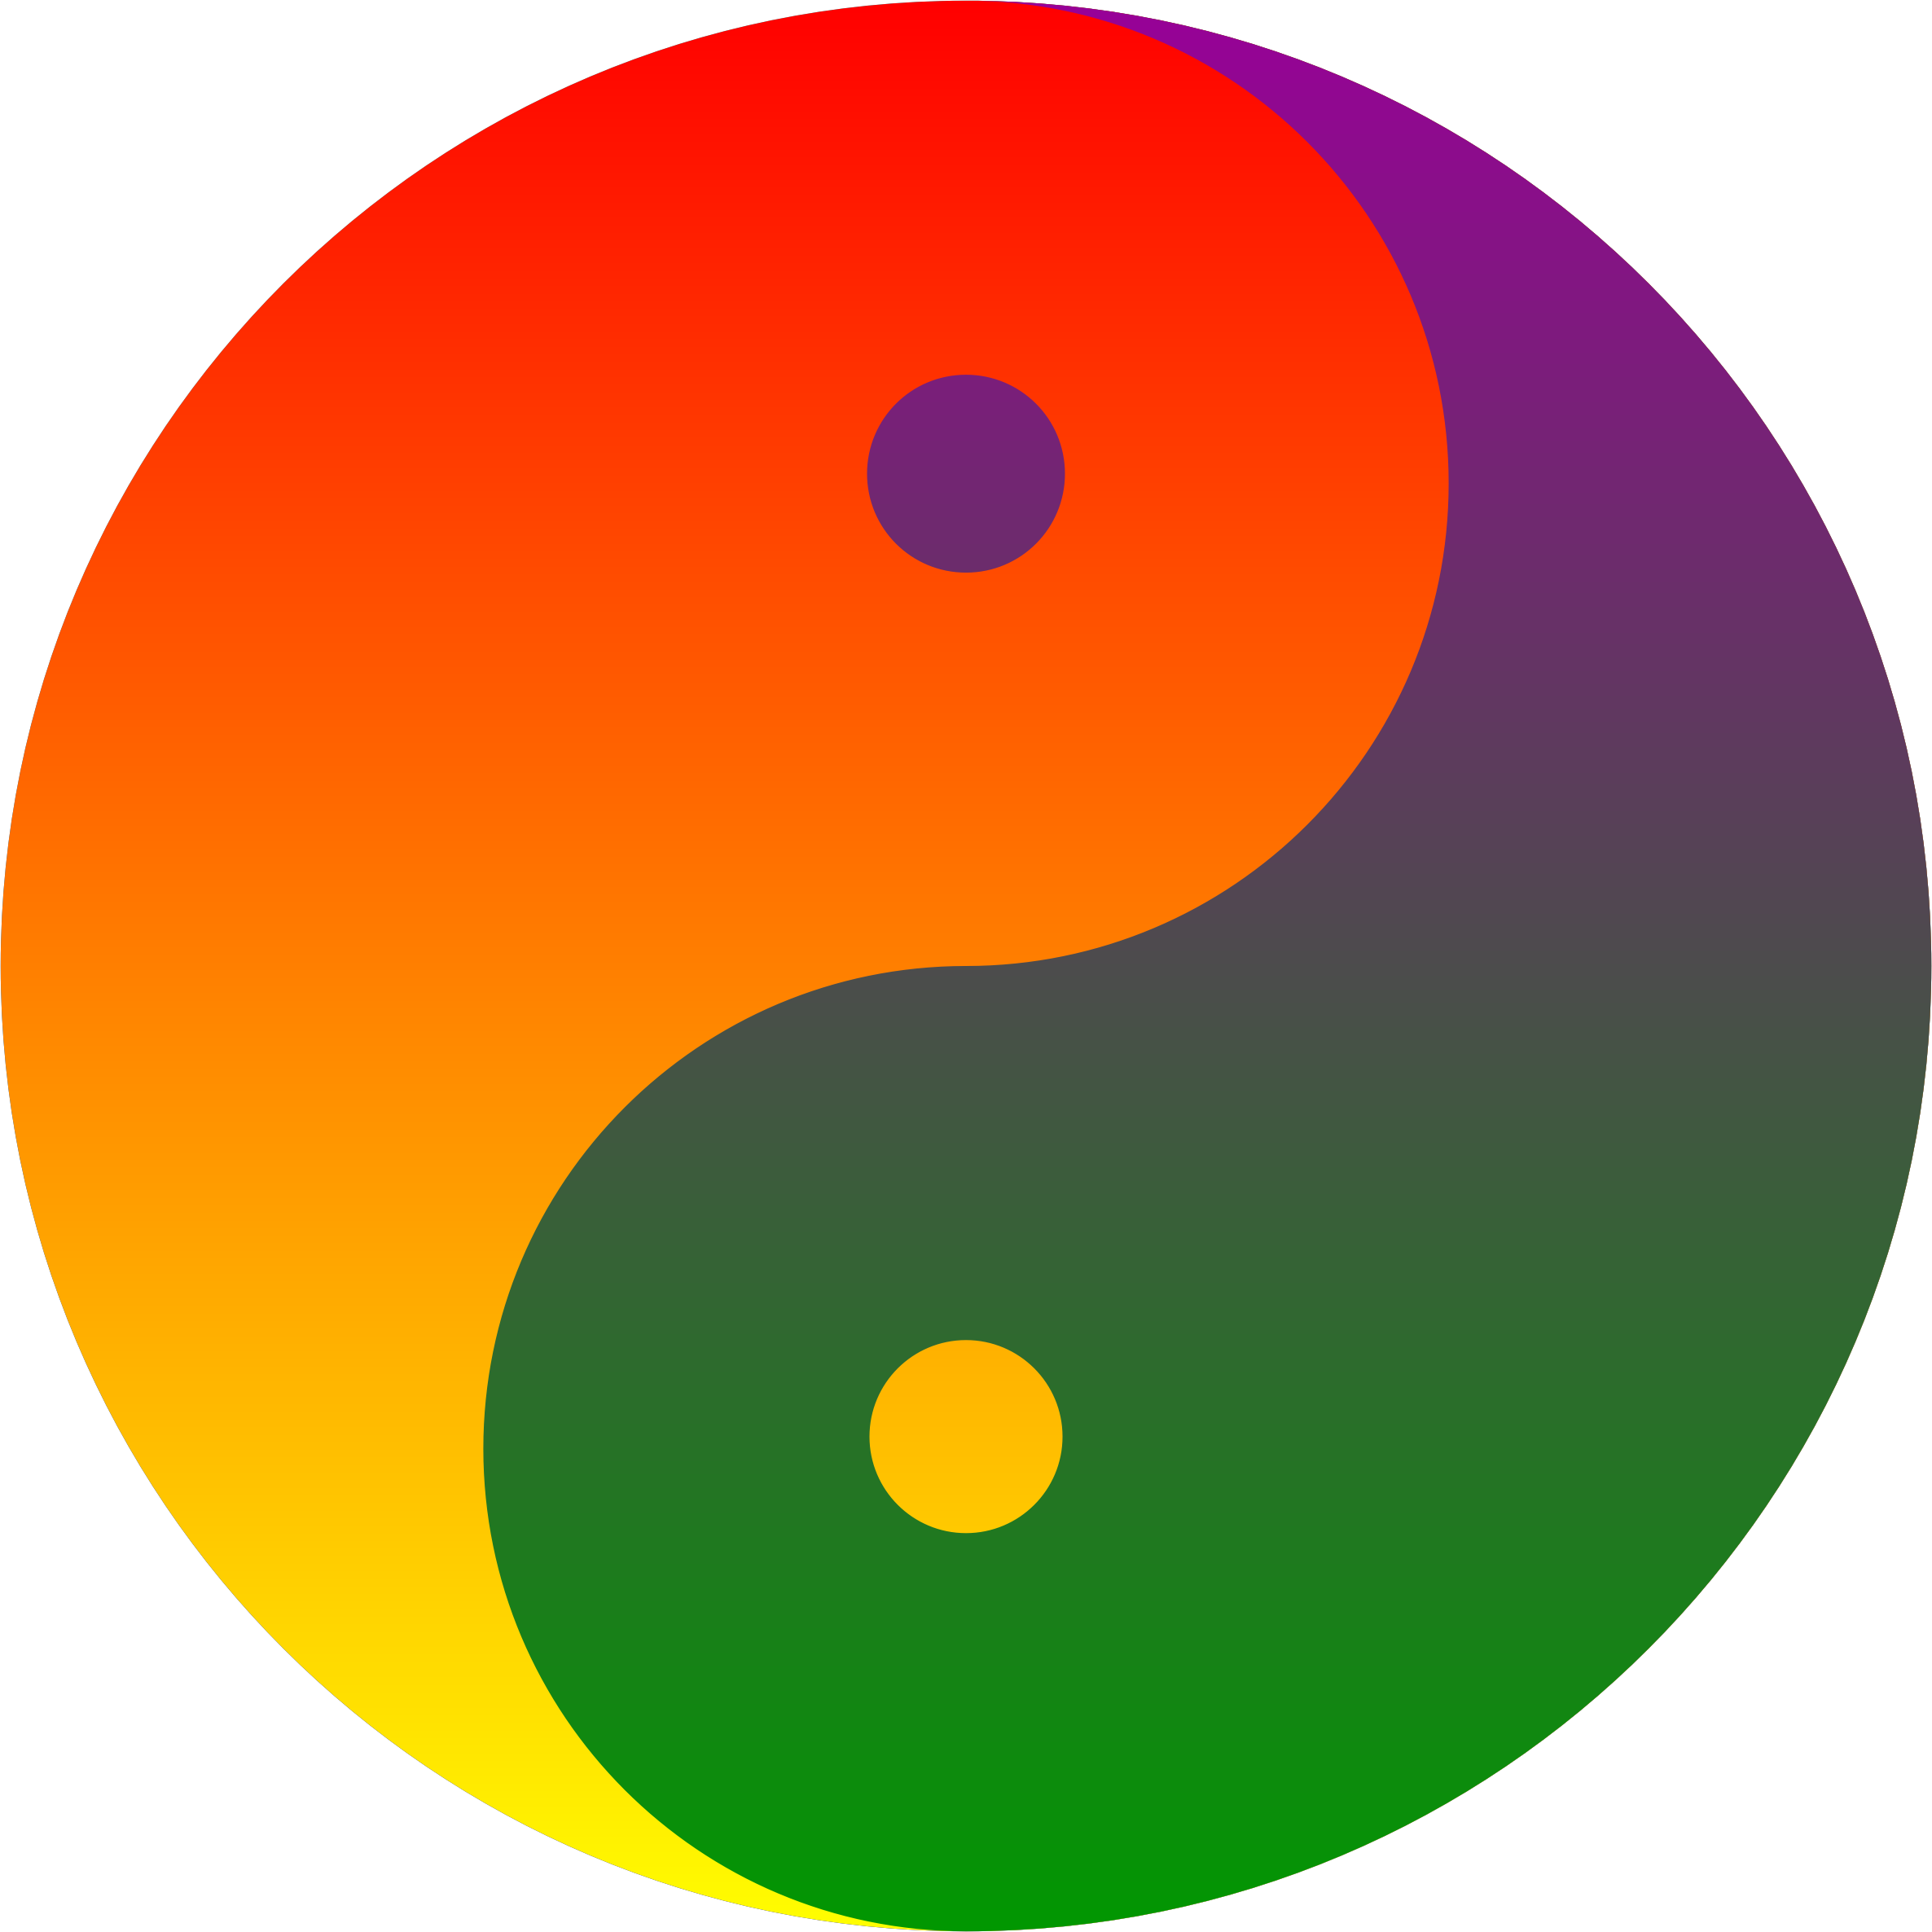 Clipart rainbow blend yin yang ying yang symbols pinterest the yin yang with yang filled with the colors of the rainbow flag and yin filled with their complementary as well as complimentary colors buycottarizona Choice Image